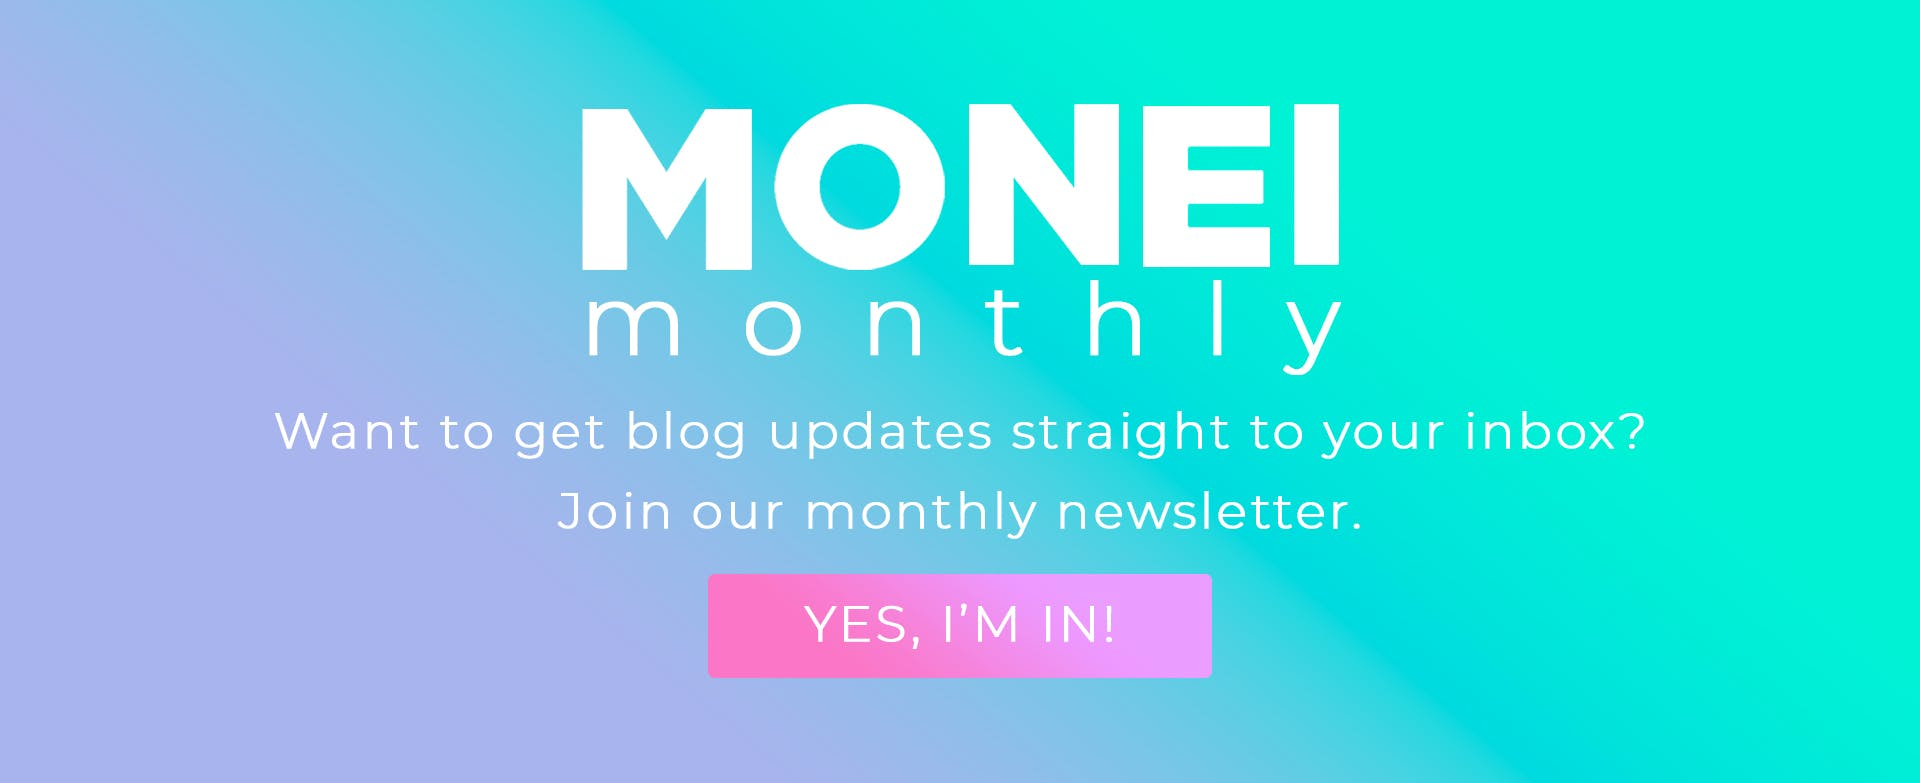 MONEI monthly newsletter sign up graphic